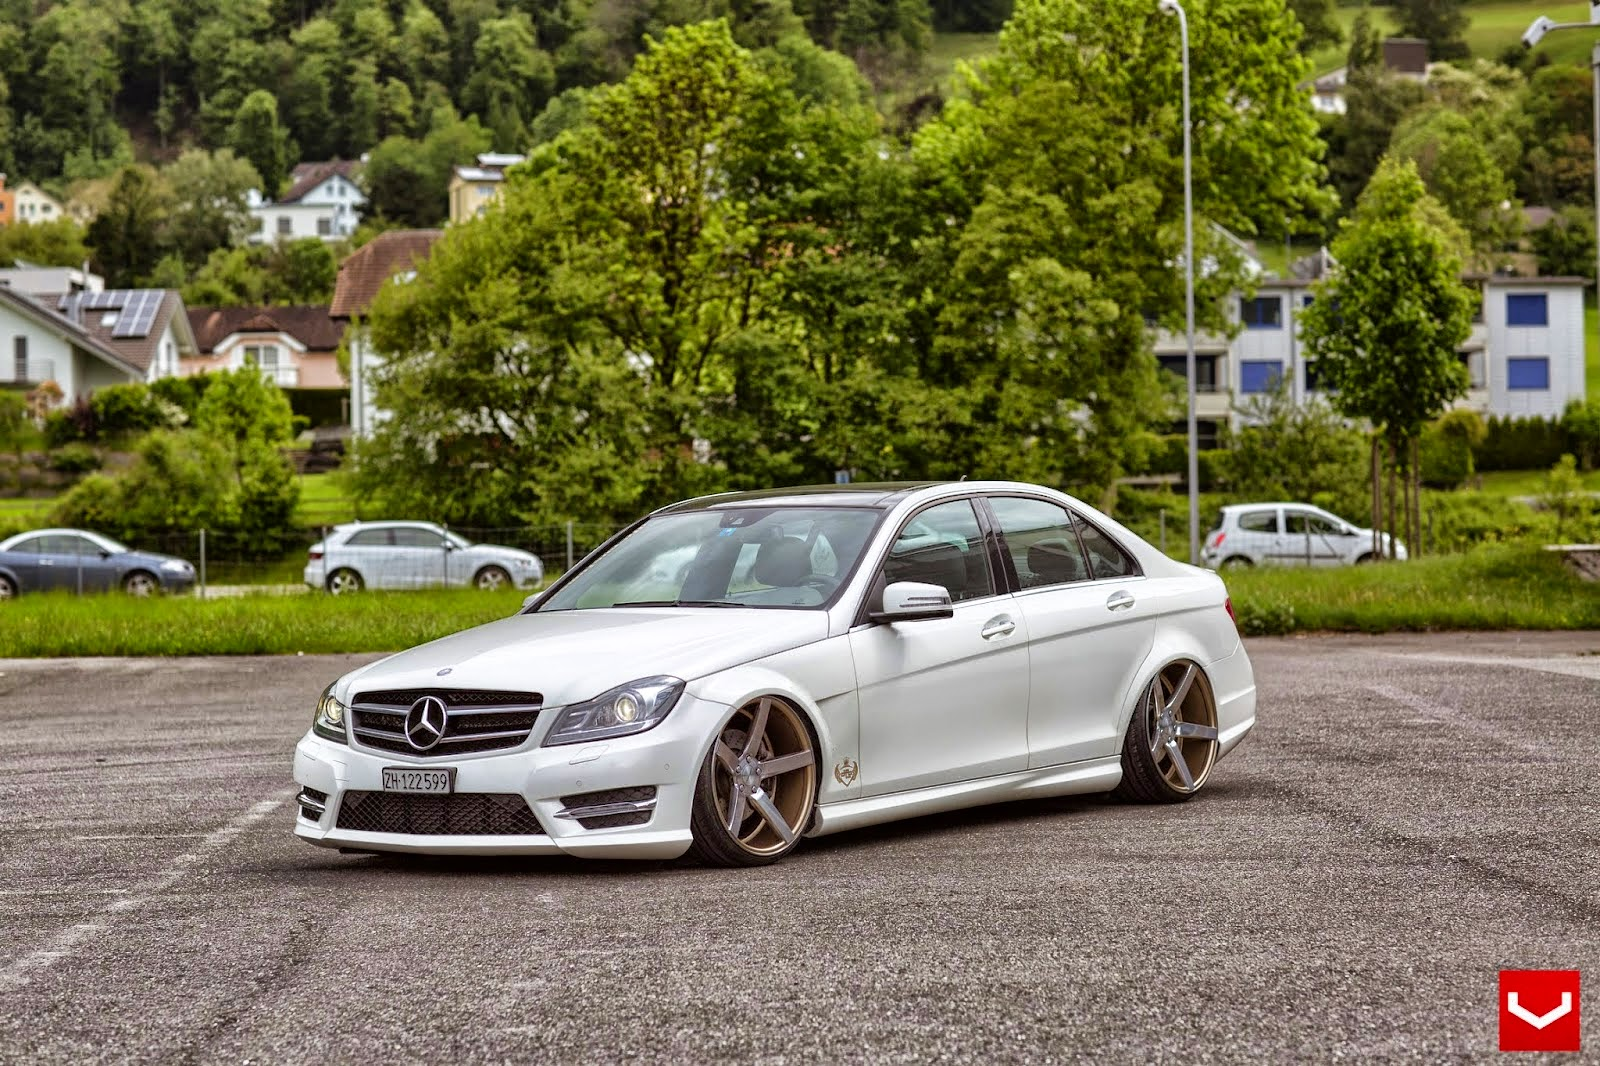 Mercedes benz w204 c class stance style benztuning for Mercedes benz w204